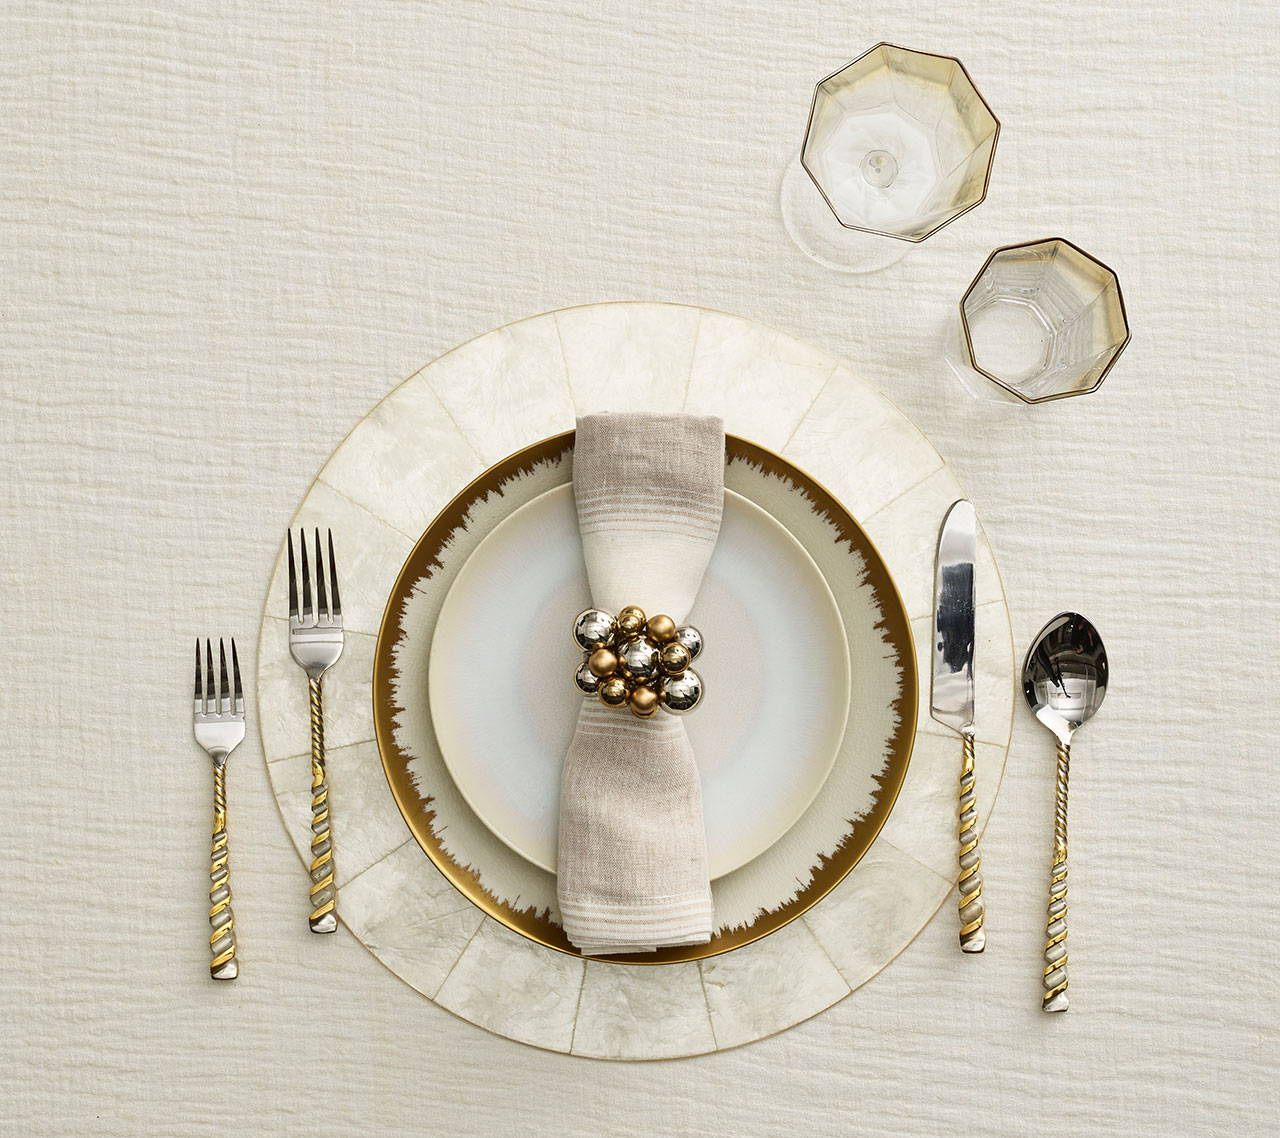 A classic table setting